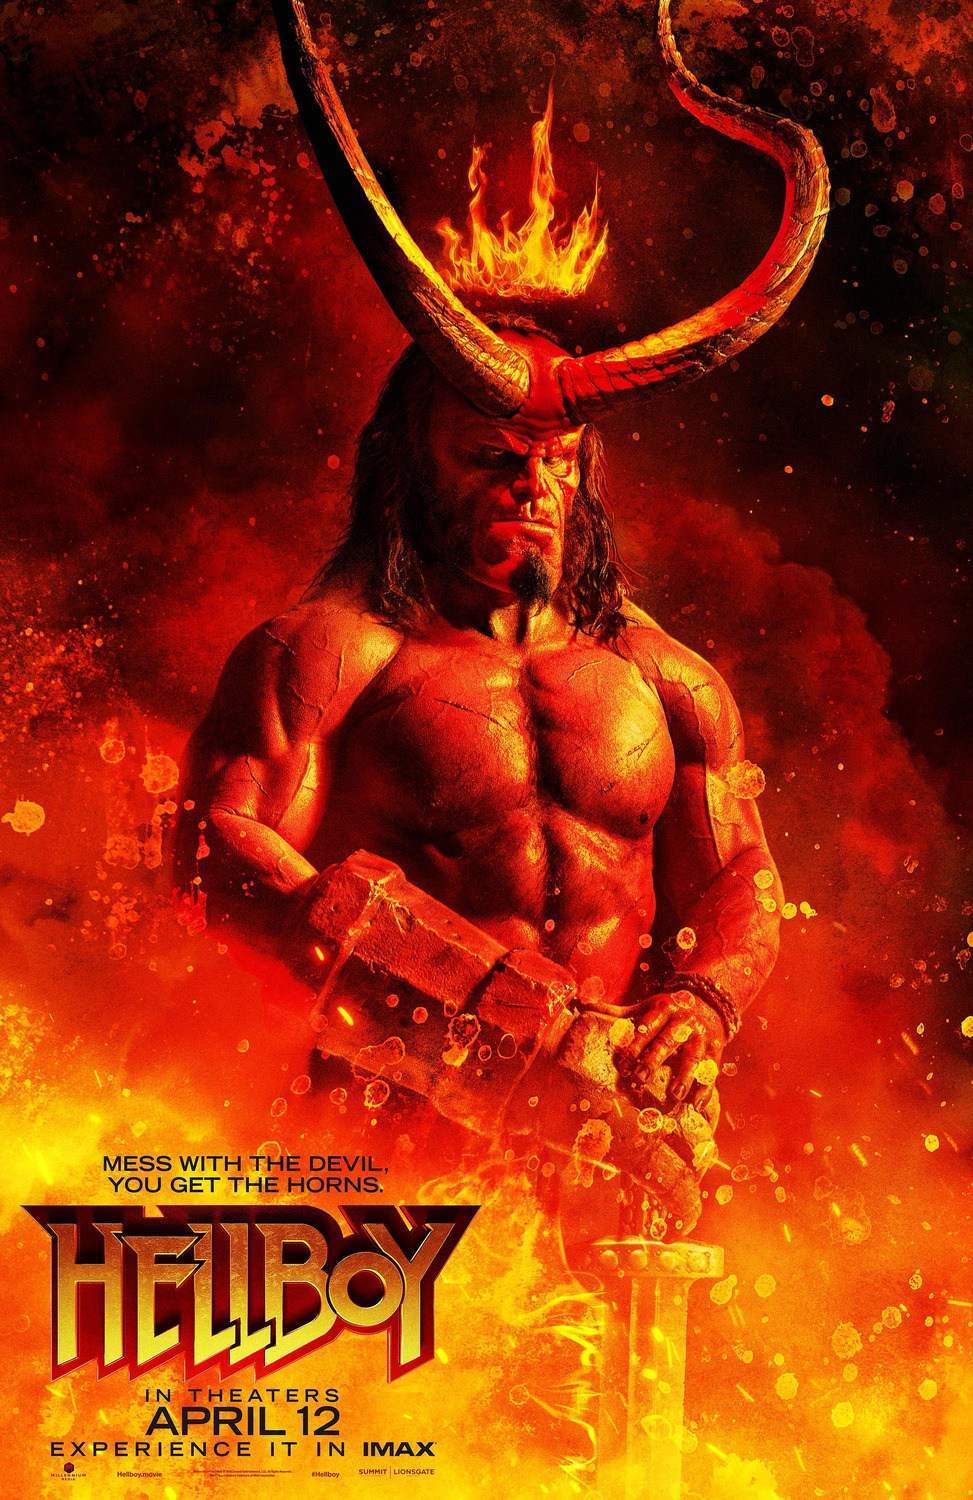 hellboy-looks-determined-in-this-new-poster-for-the-upcoming-reboot1